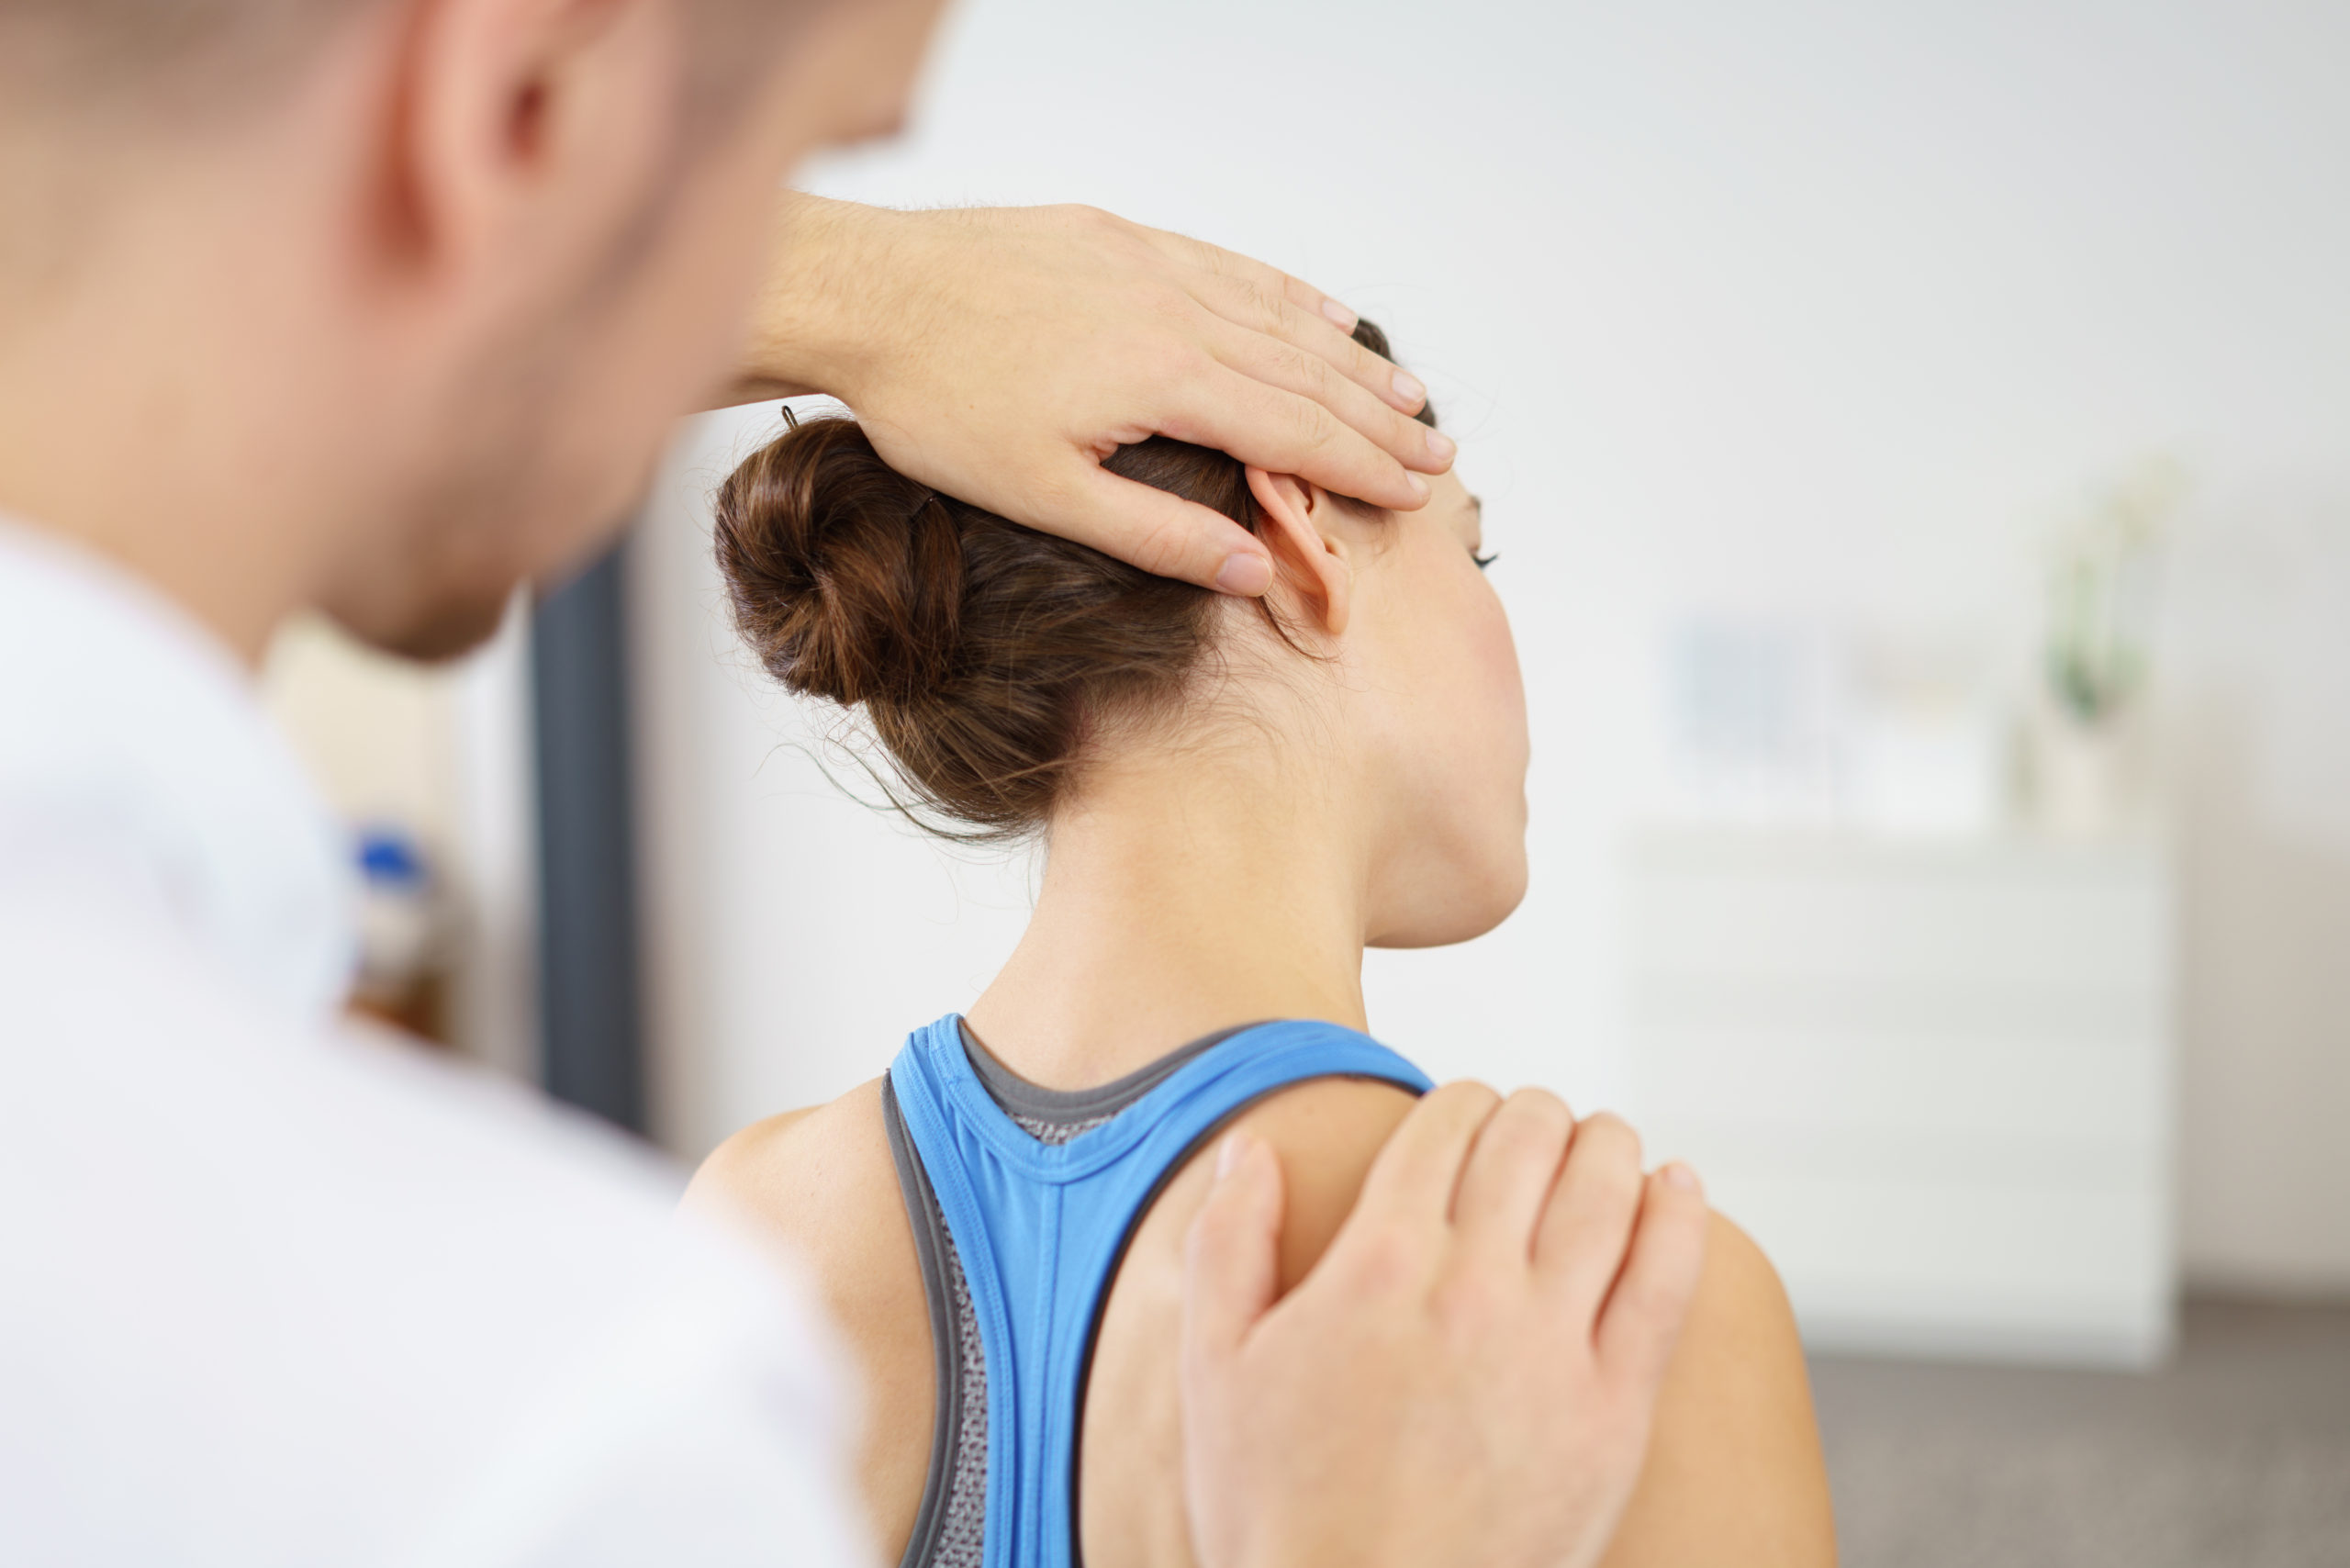 Physical Therapist Insights: Recovering from Whiplash